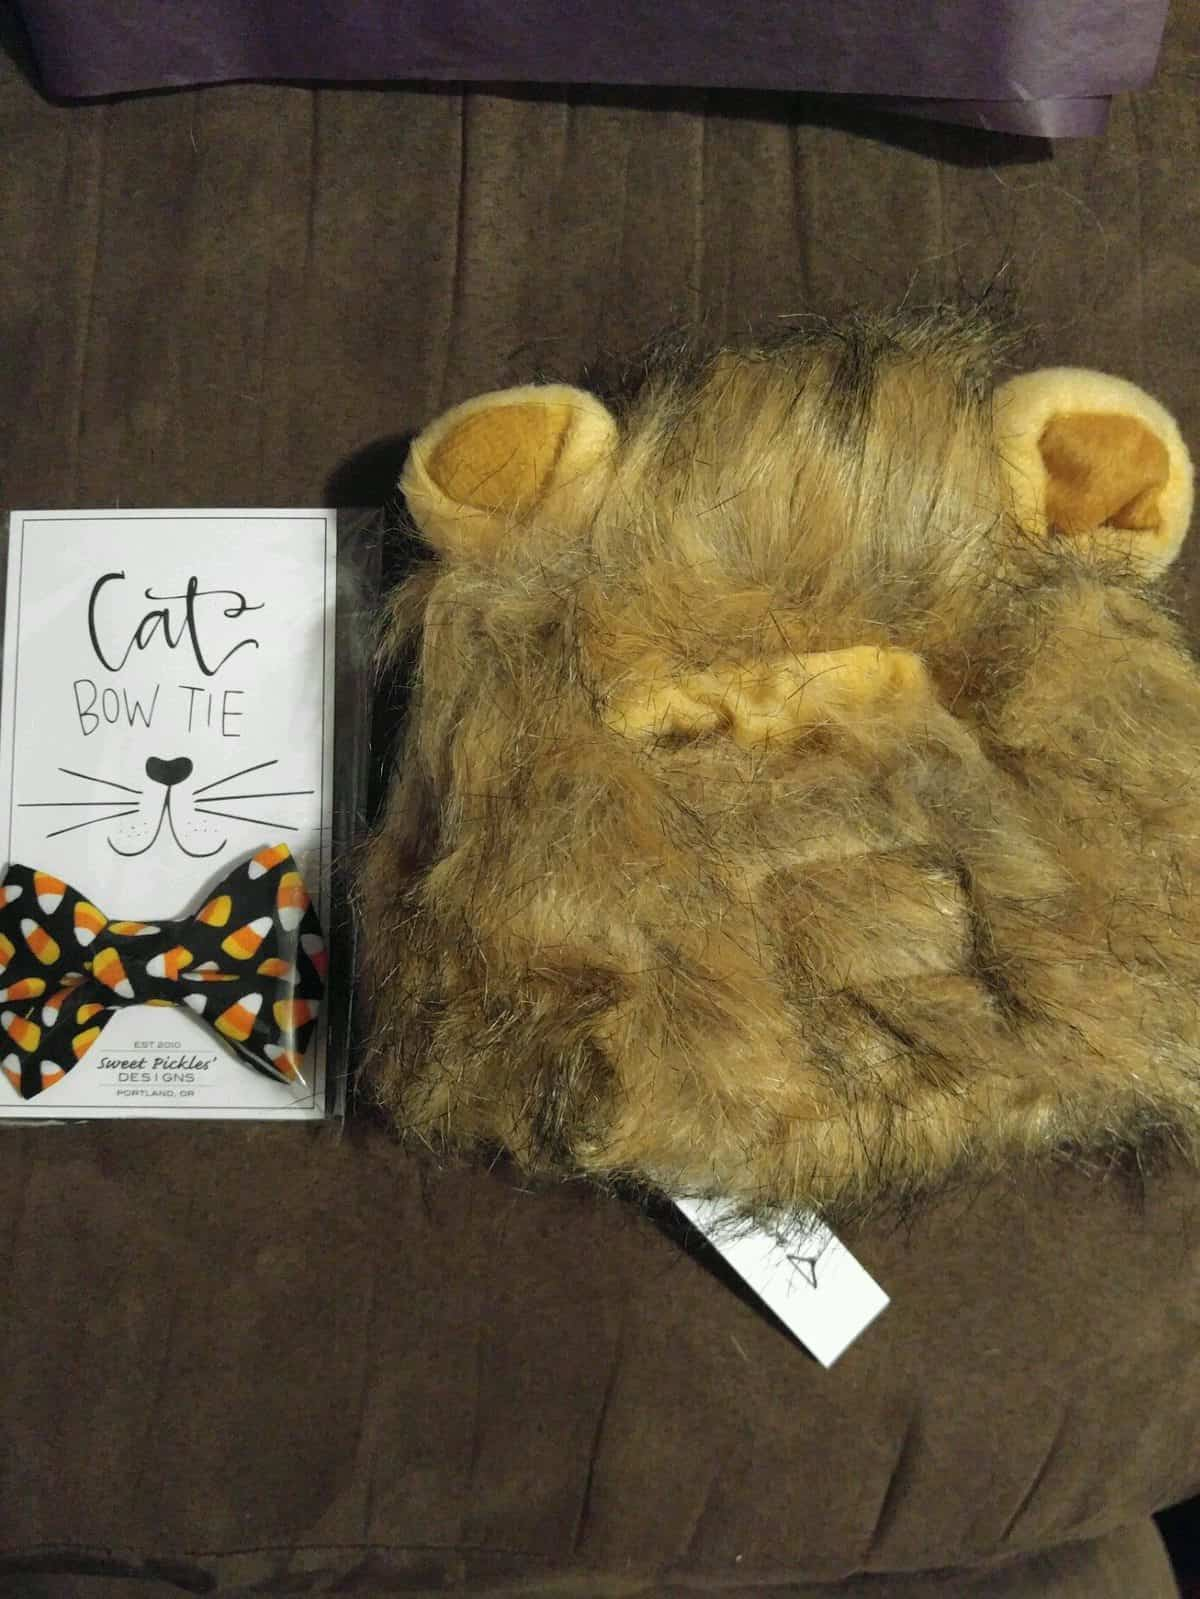 WhiskerBox October 2016 Box Review - Cat Apparel